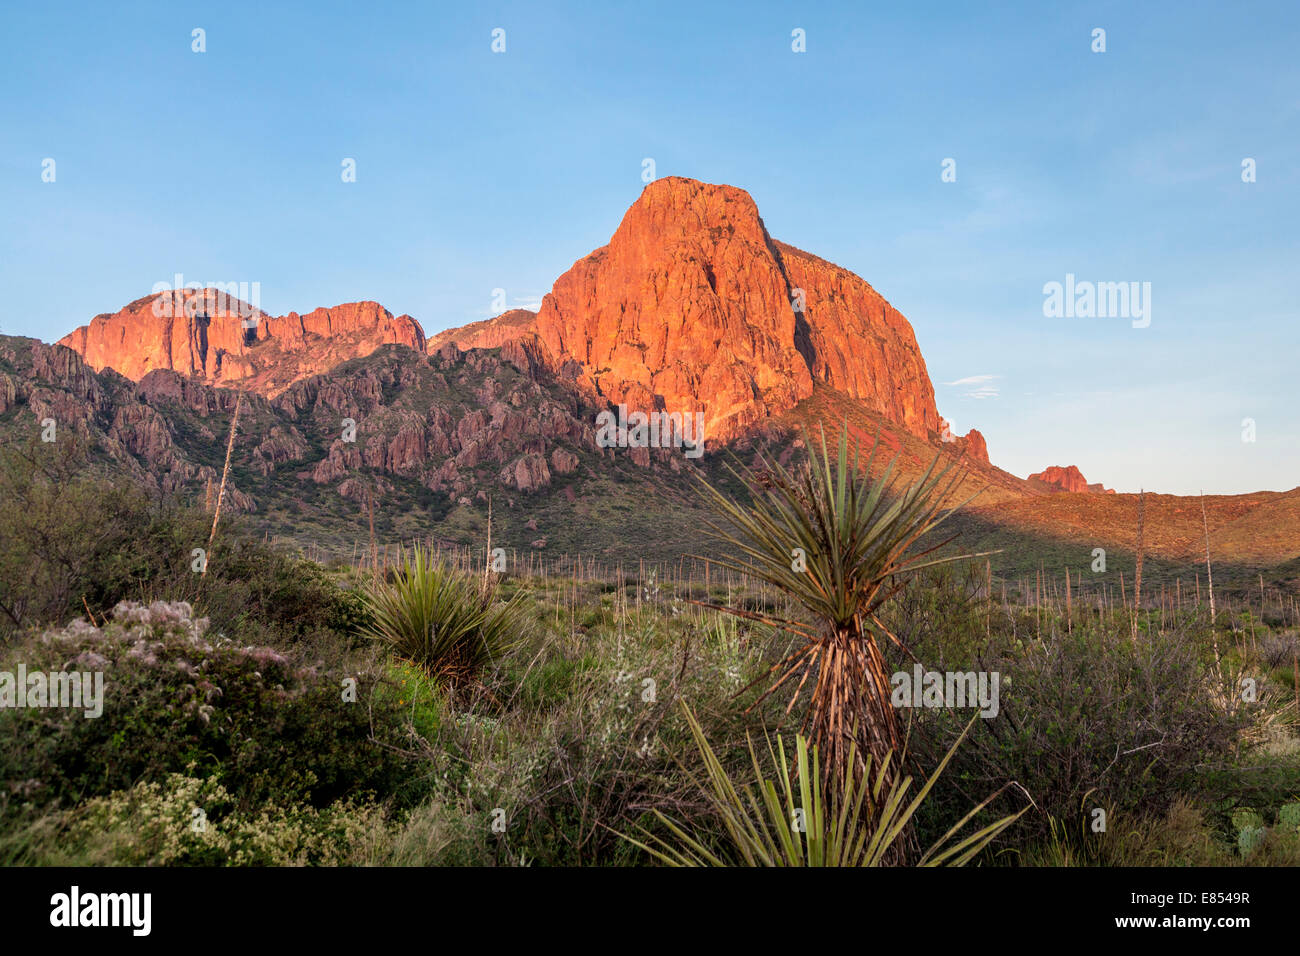 Glow from sunrise lights up the Chisos Mountains in Big Bend National Park. Stock Photo